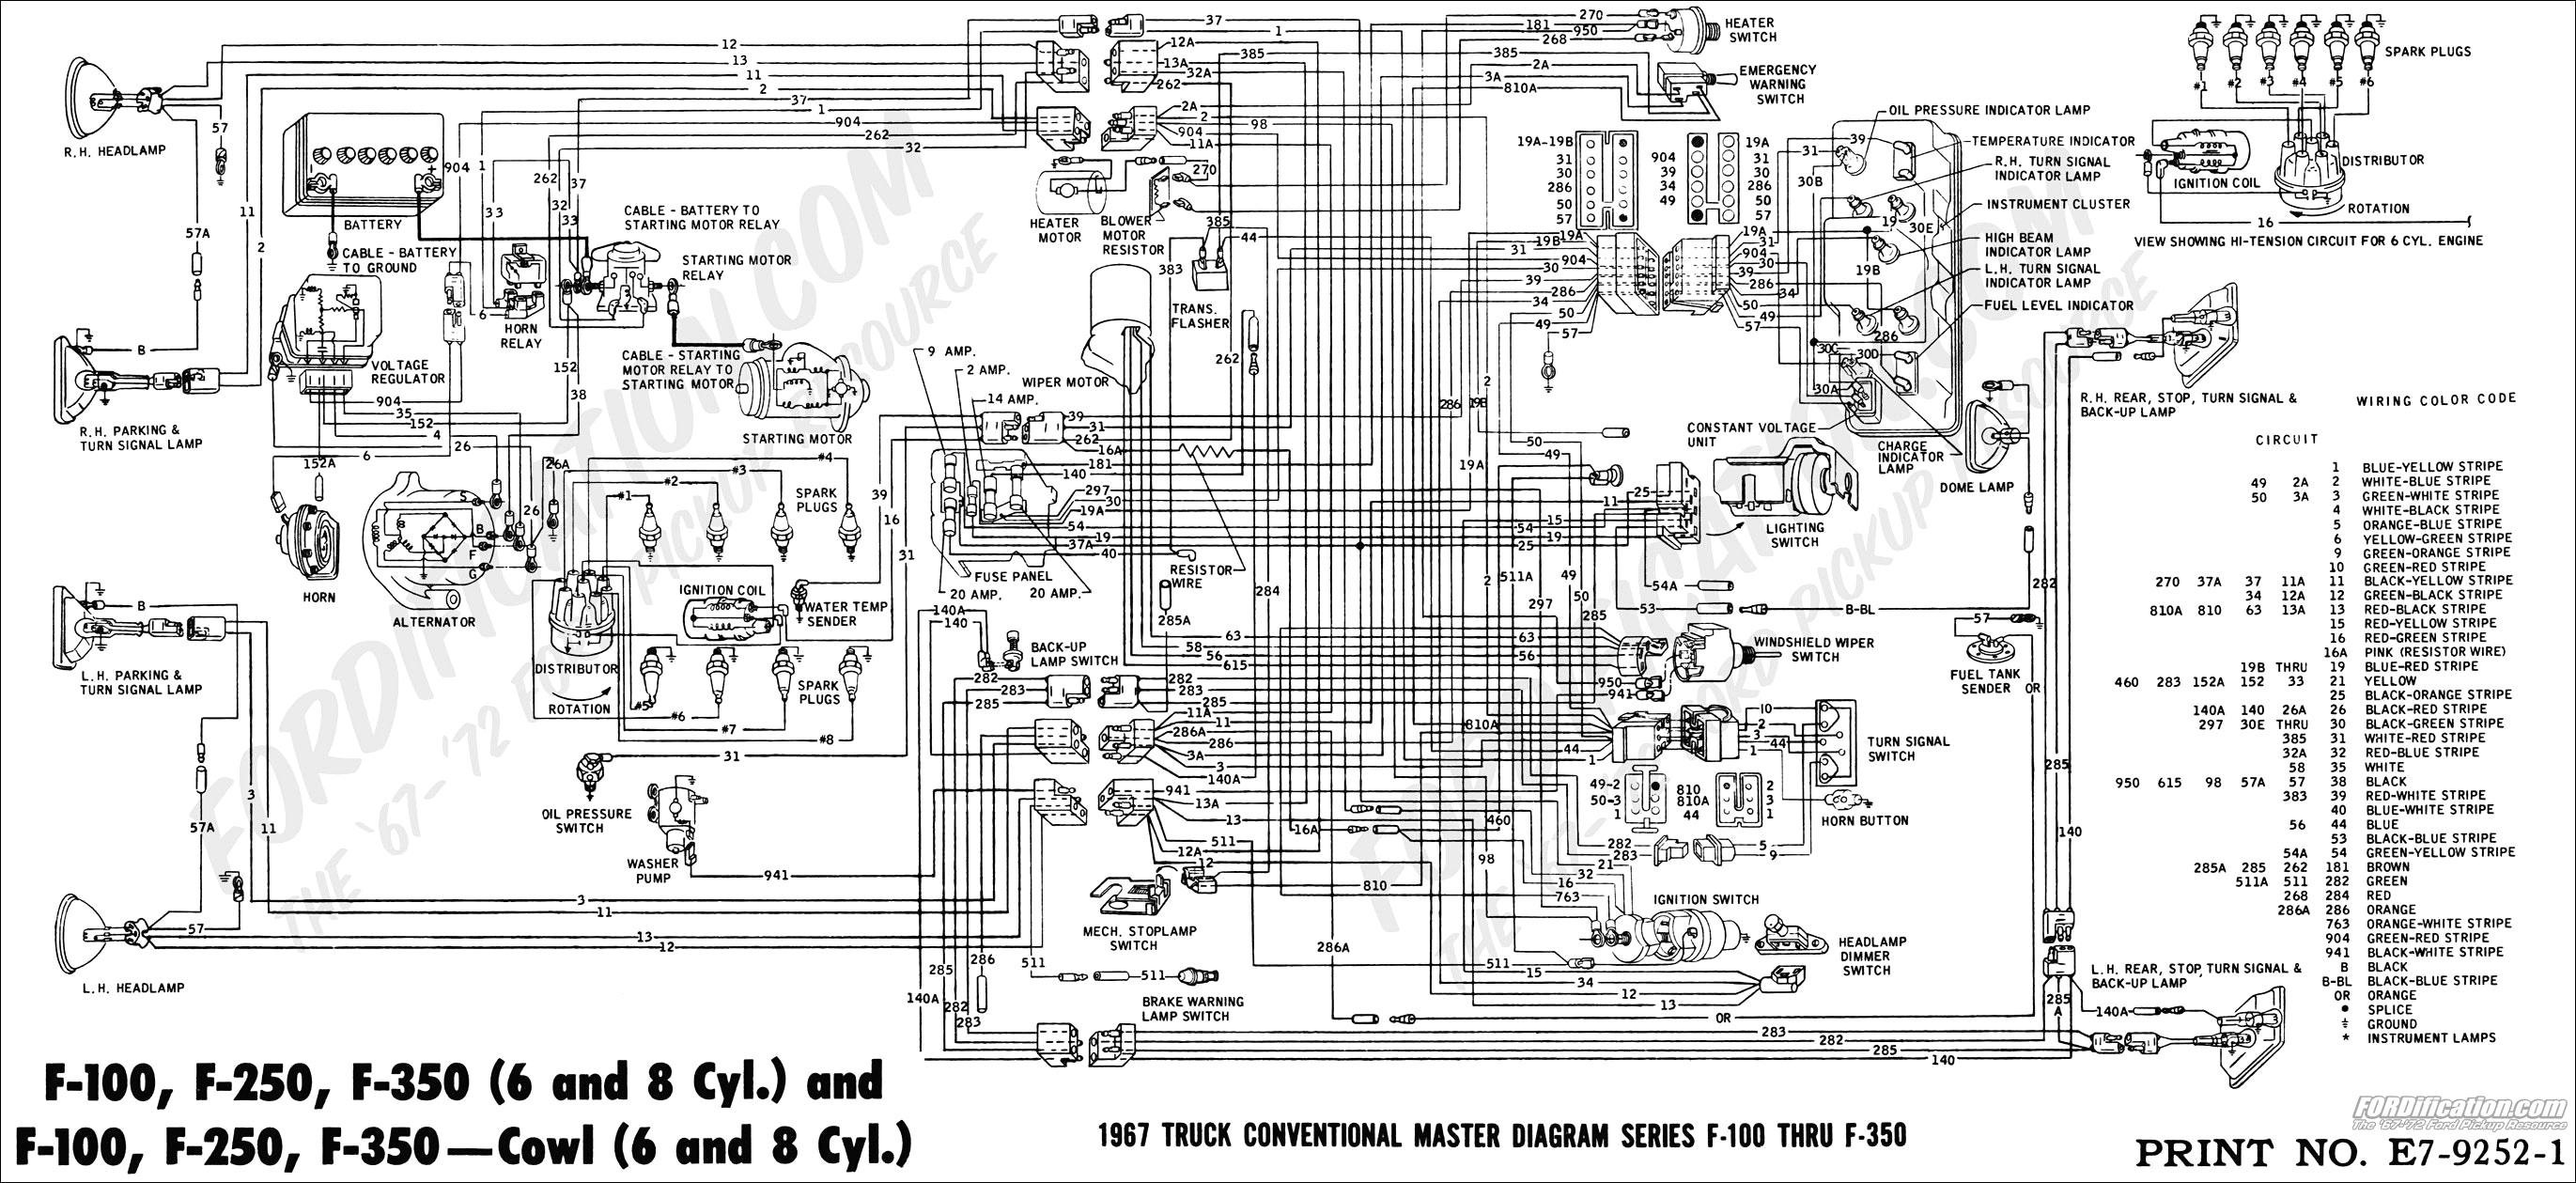 [DIAGRAM_5FD]  9438F1 78 Ford Bronco Horn Wiring Diagram | Wiring Resources | 1984 Ford Bronco Fuse Diagram |  | Wiring Resources